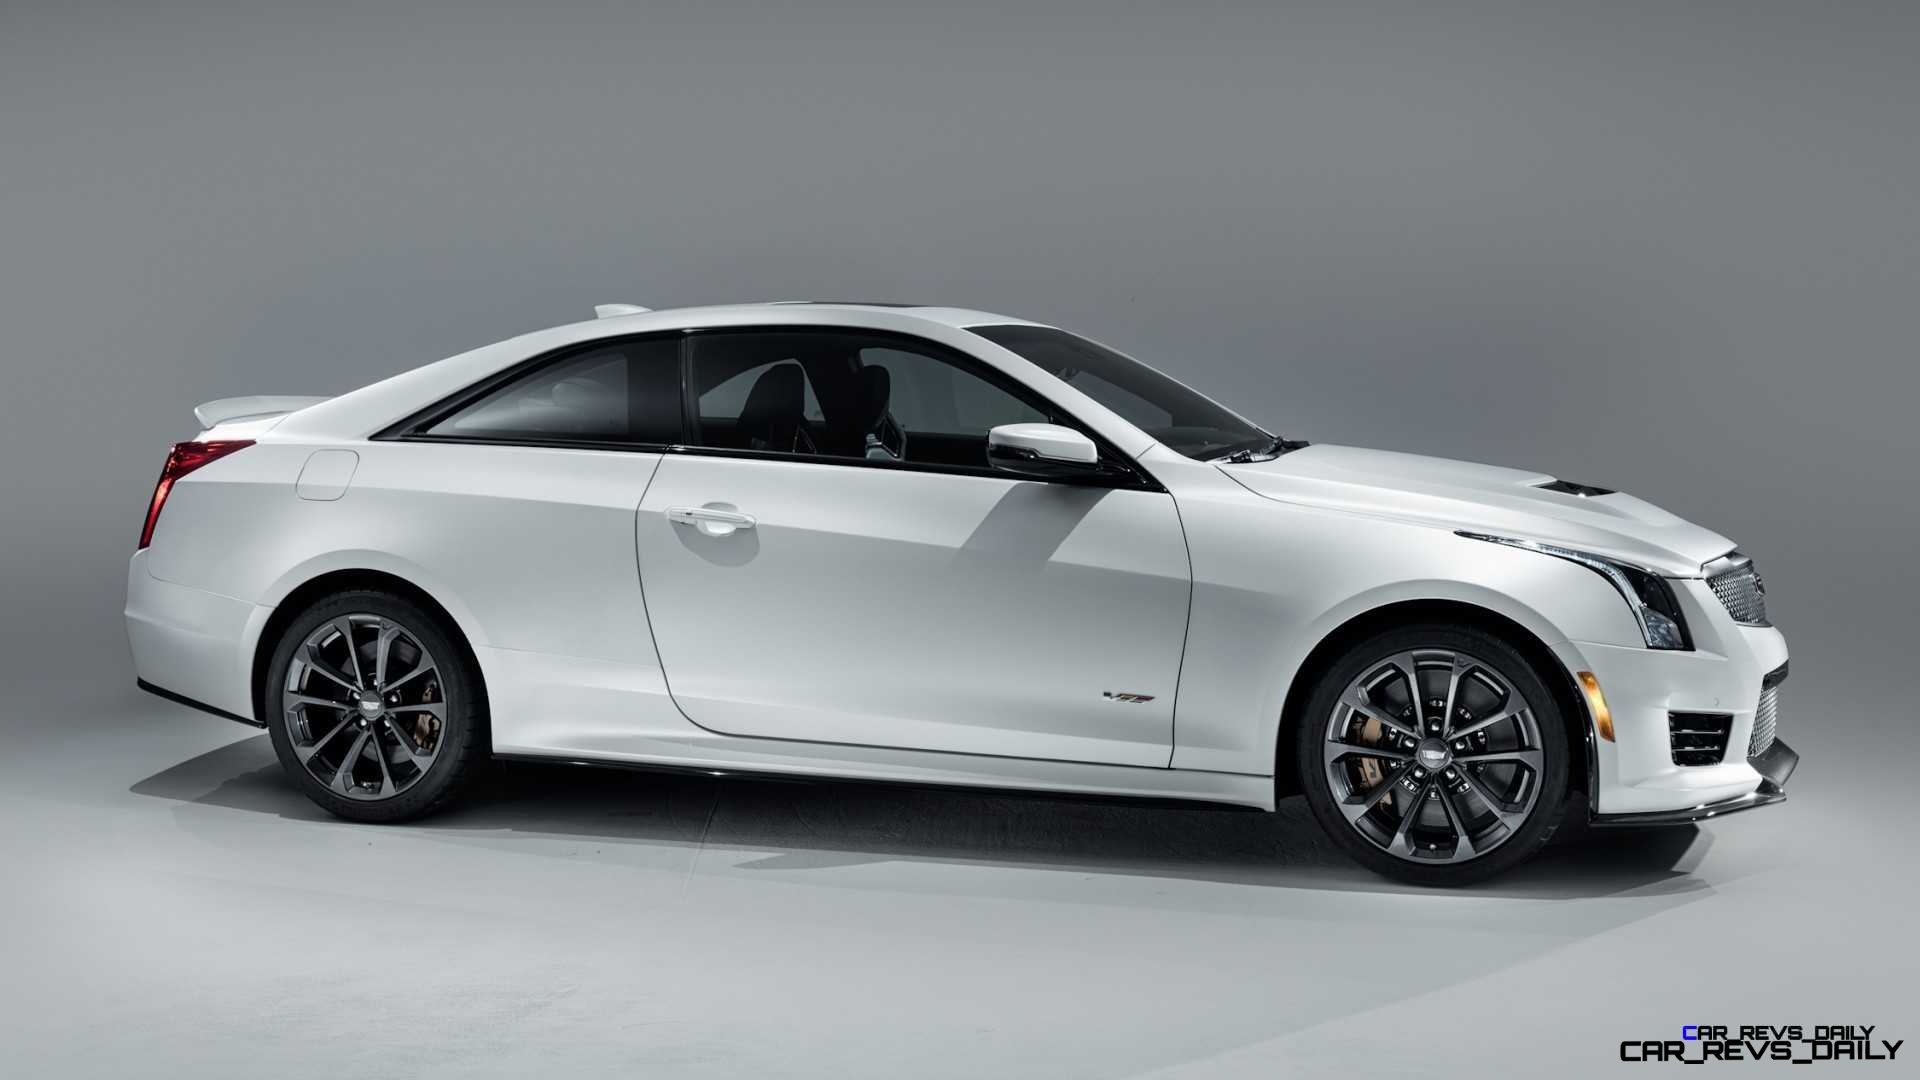 2016-Cadillac-ATS-V-White-Edition-HD-Images-For-Desktop